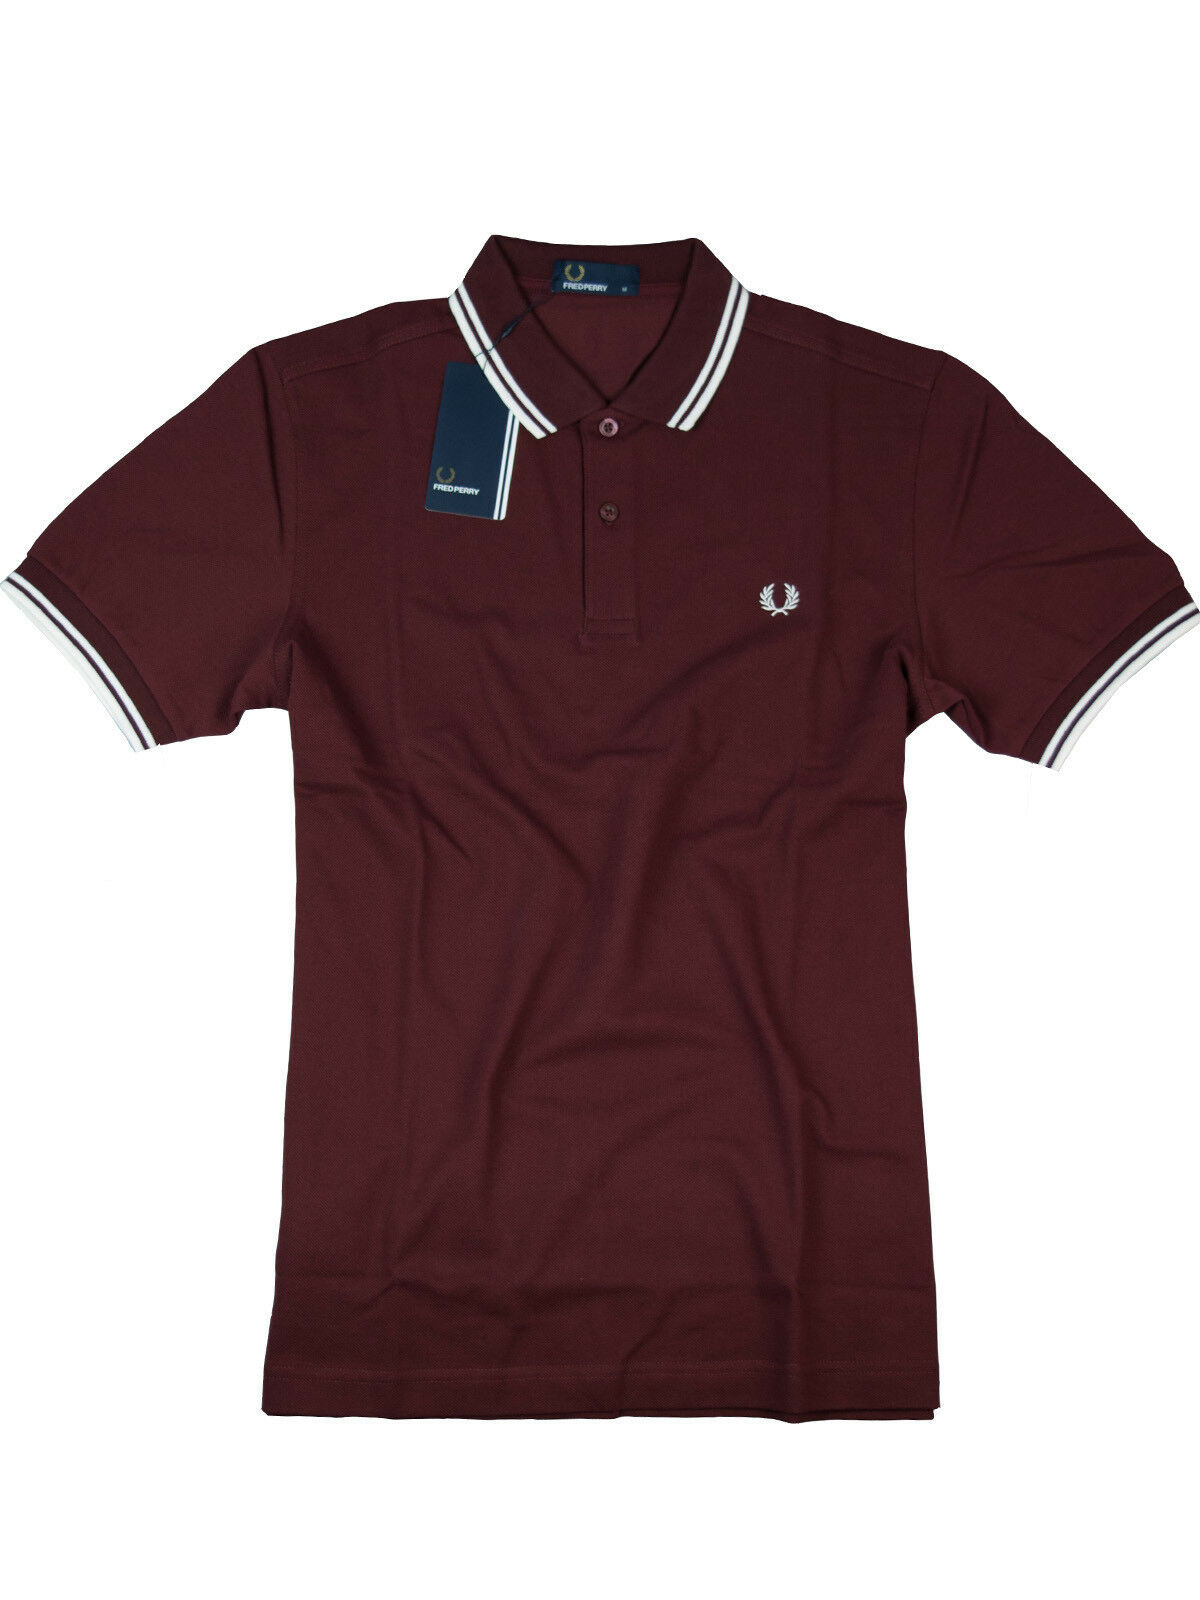 Frot Perry Polo - Shirt M3600 B72 Port   Dunkelrot   Weiß  7053